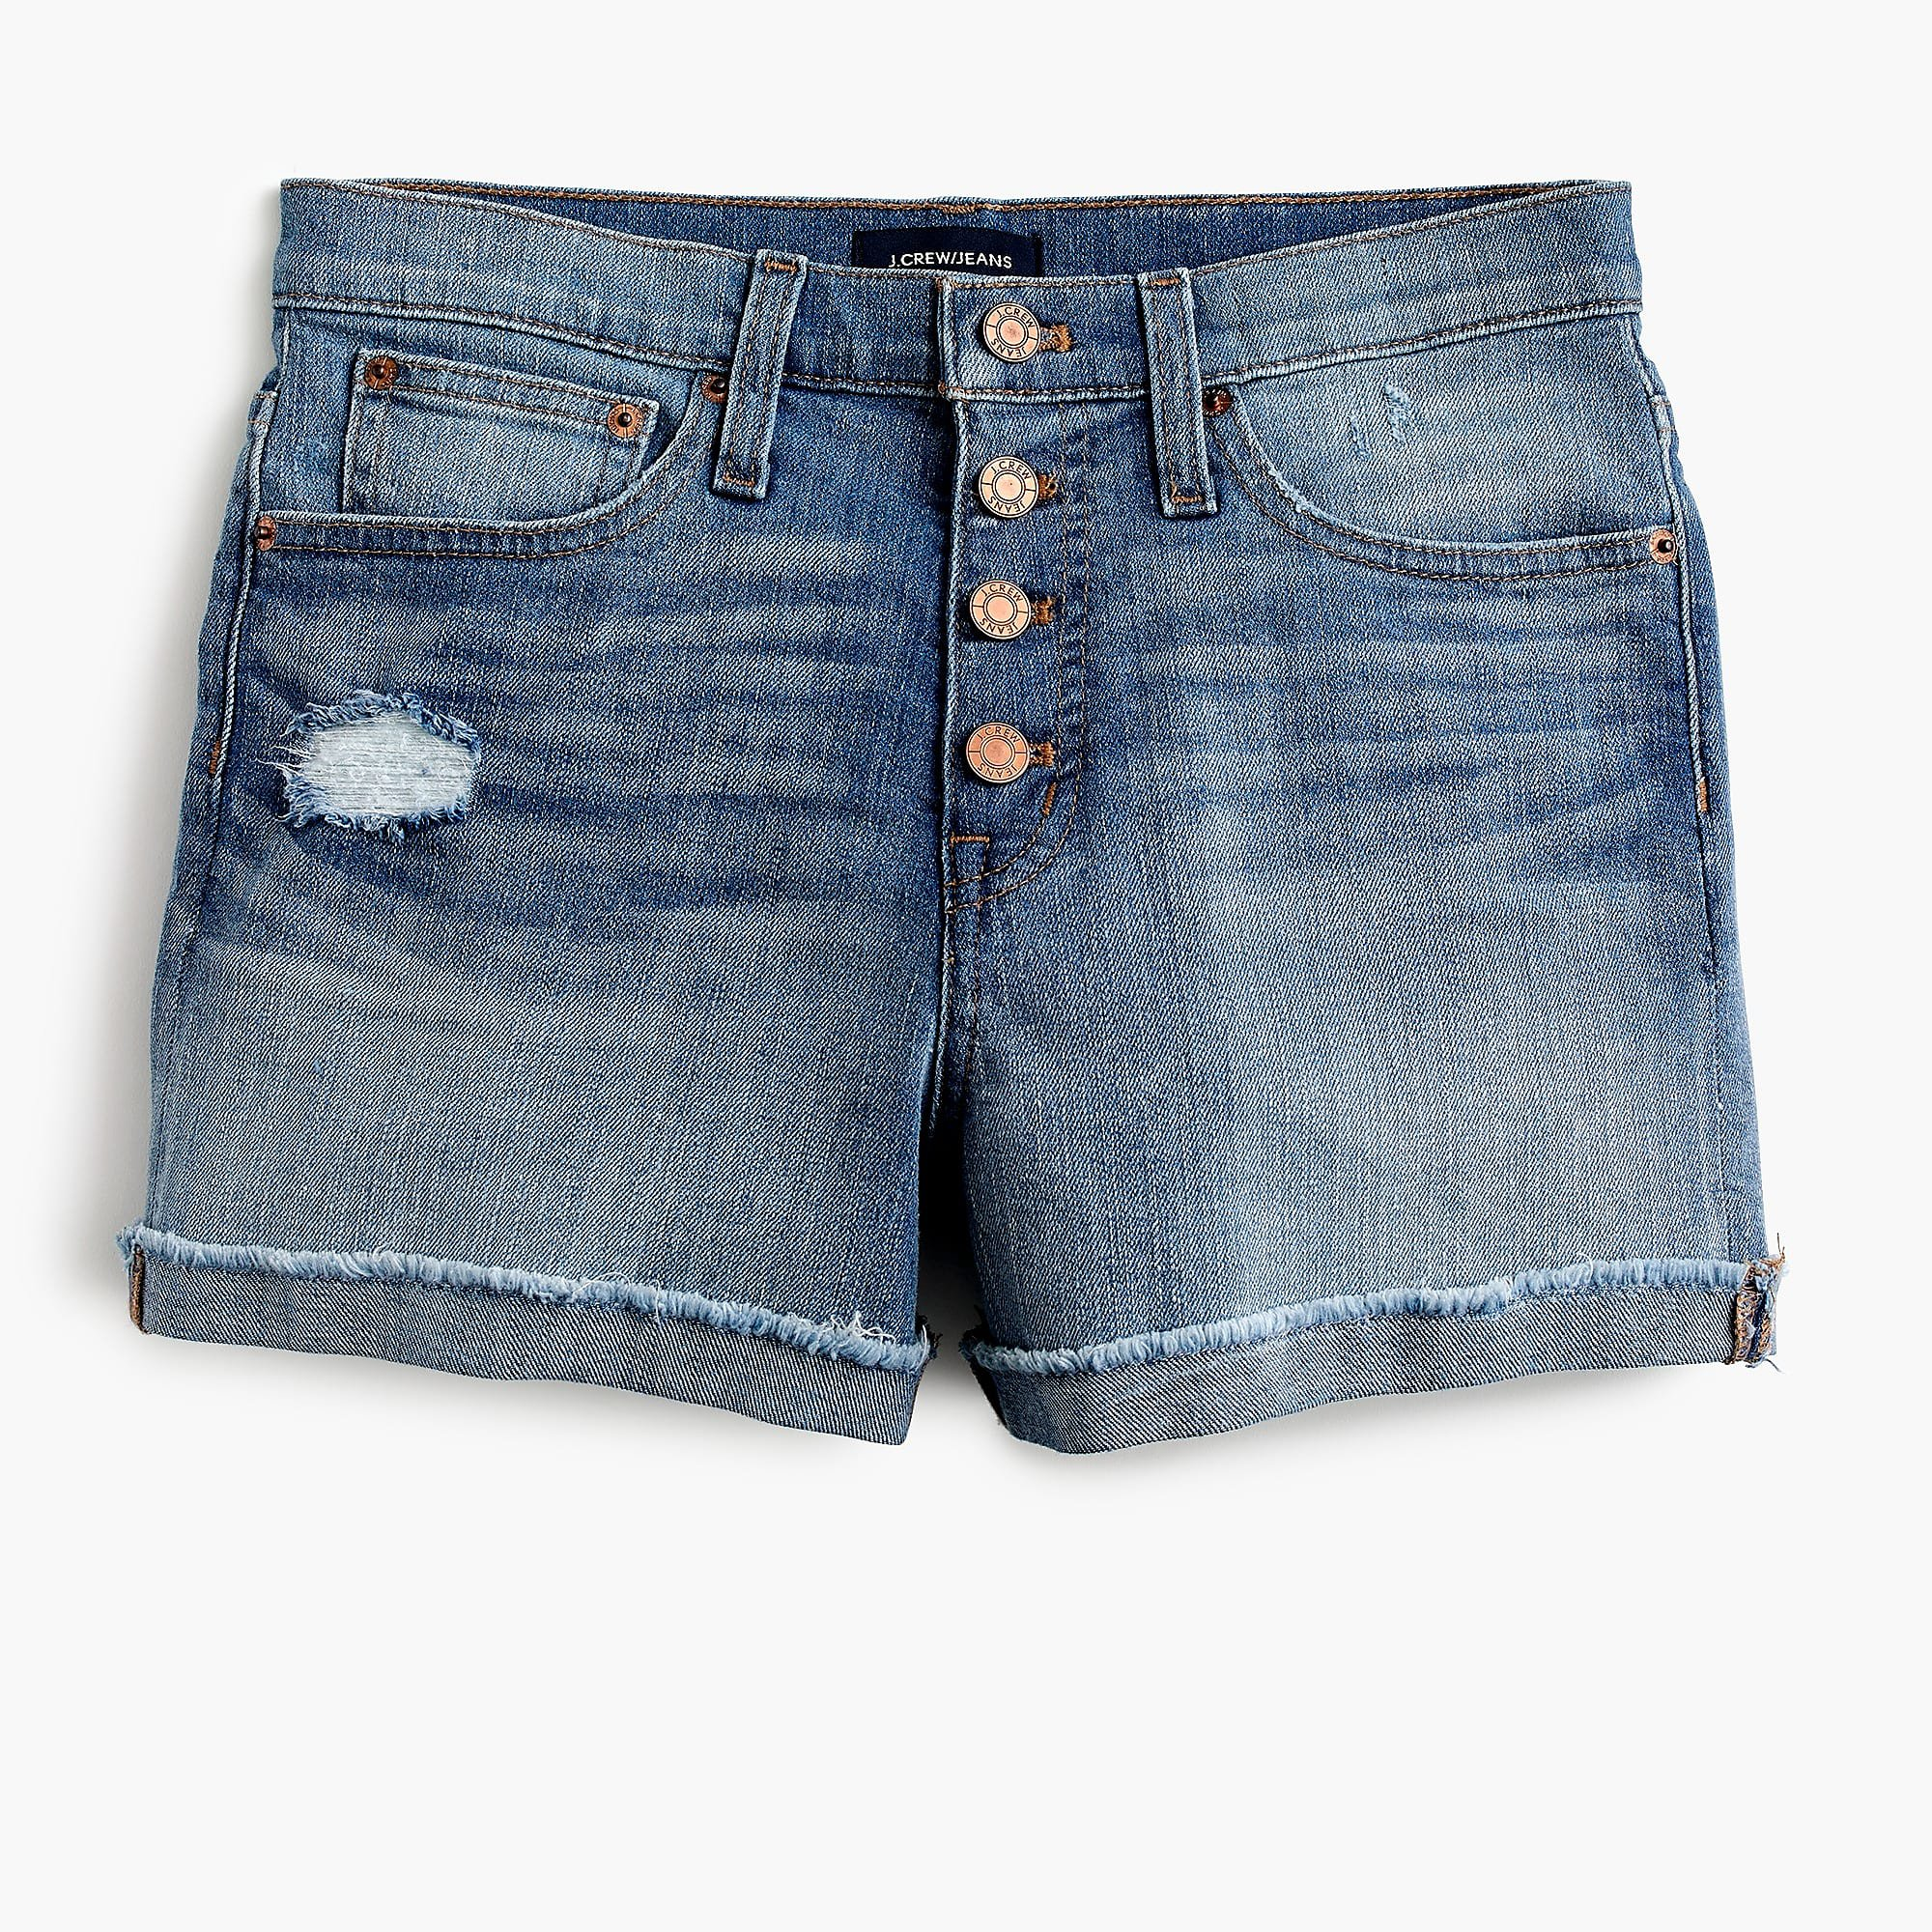 High-rise denim short with button fly - Women's Shorts   J.Crew